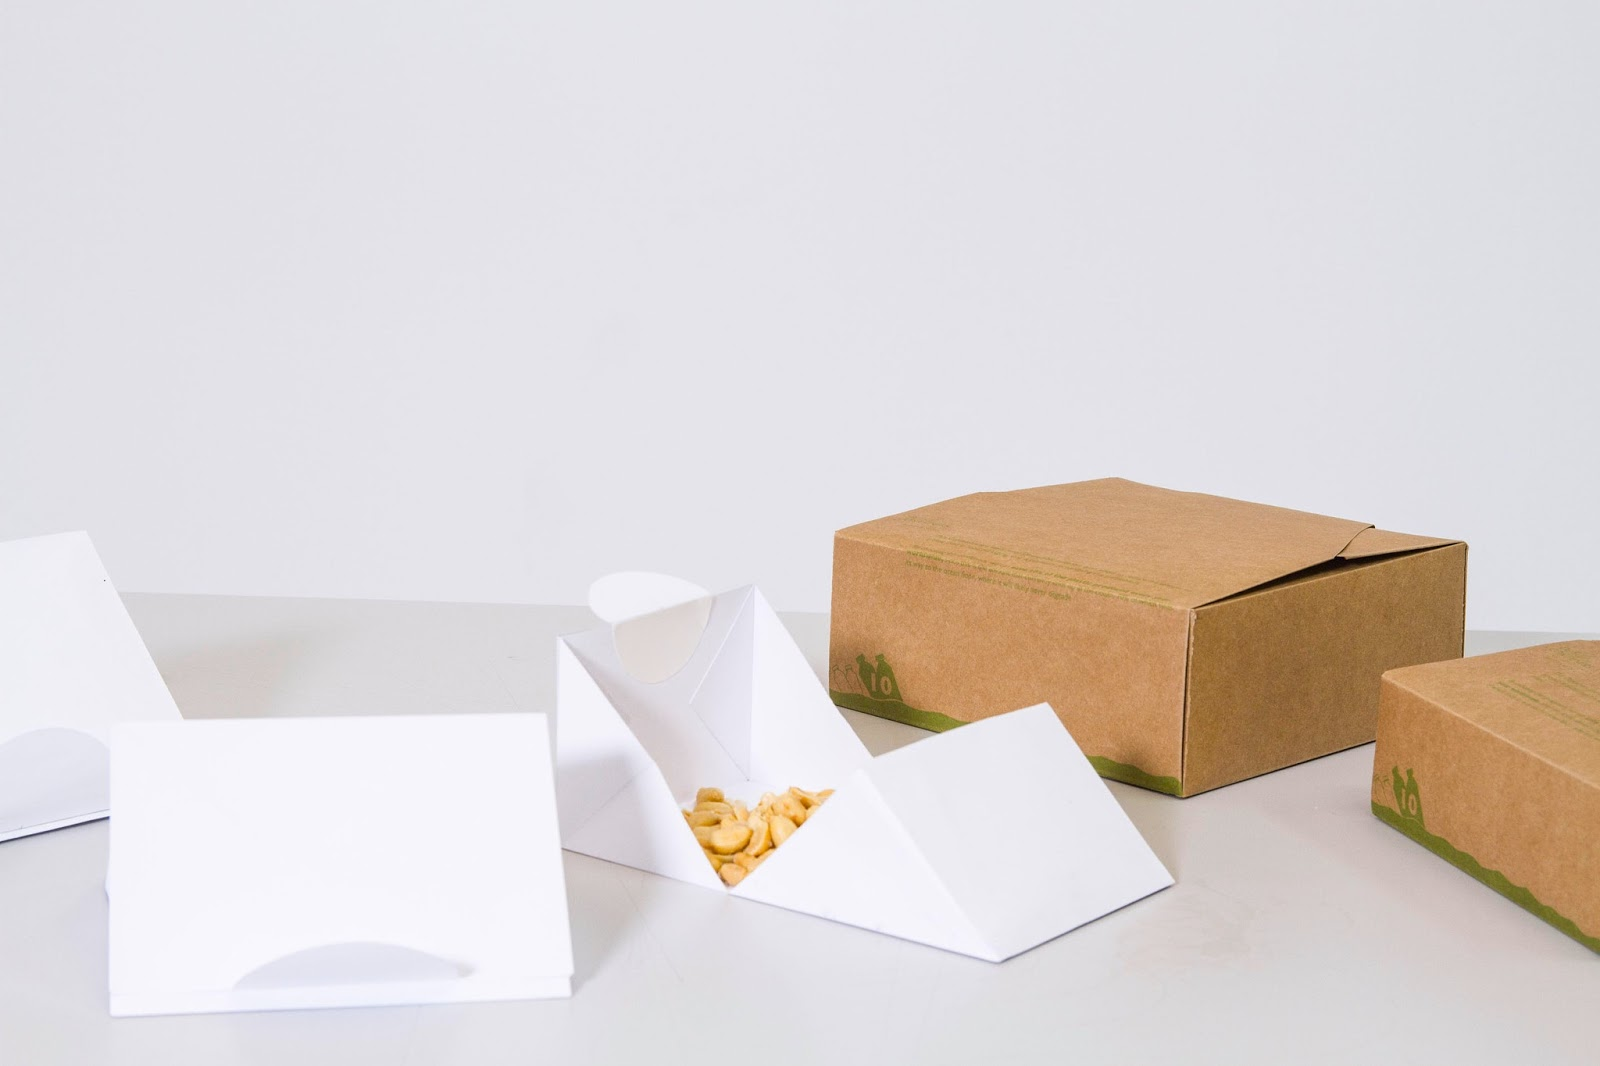 De Fold Containers Student Project on Packaging of the World